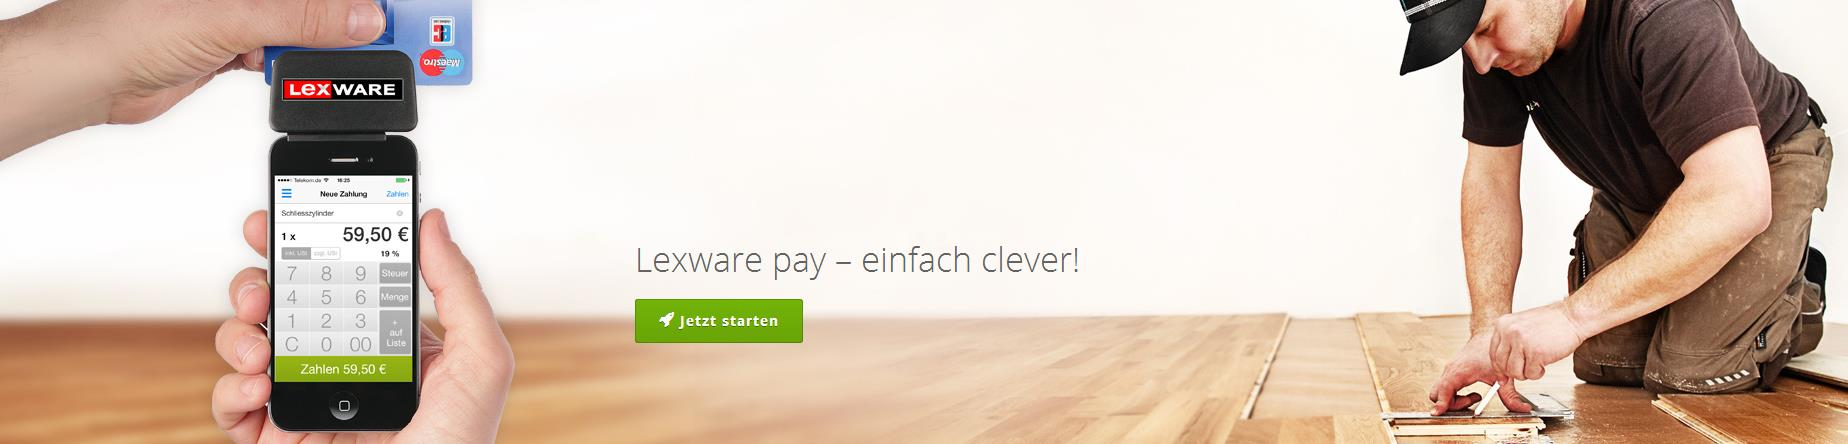 Lexware pay